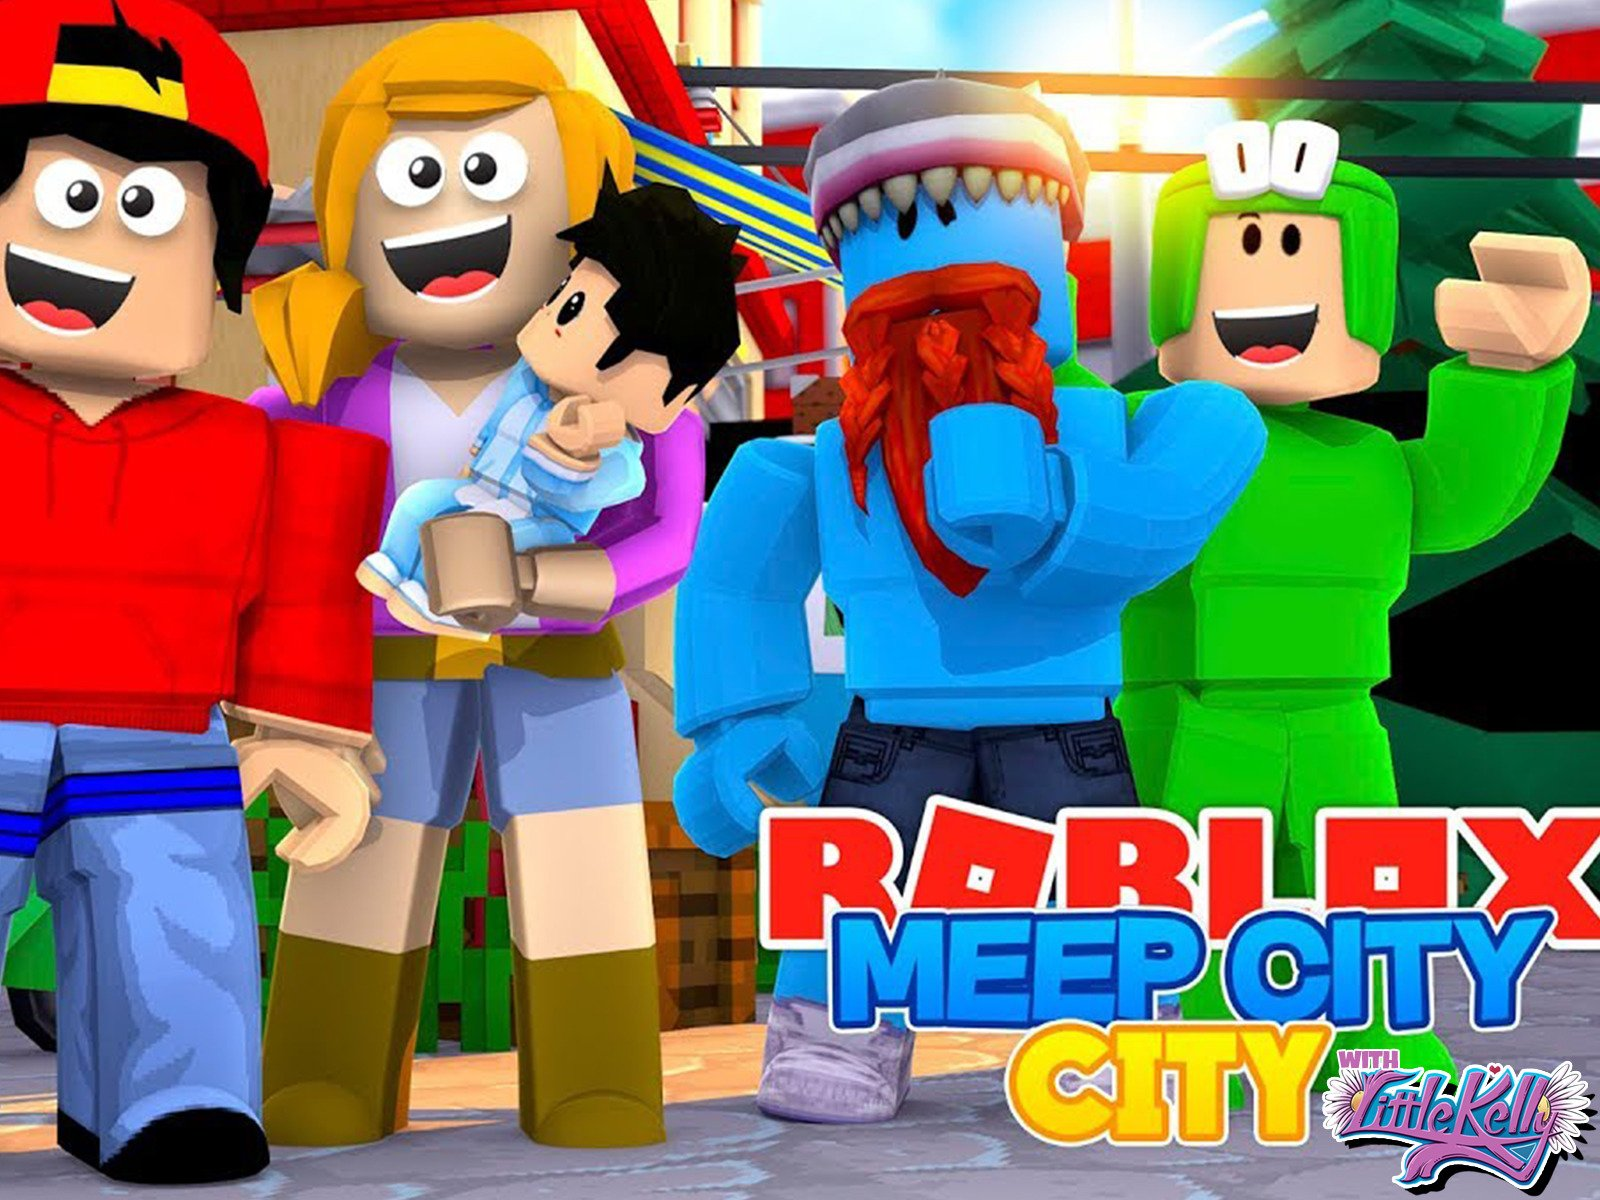 Clip: Roblox Meepcity City with Little Kelly - Season 1